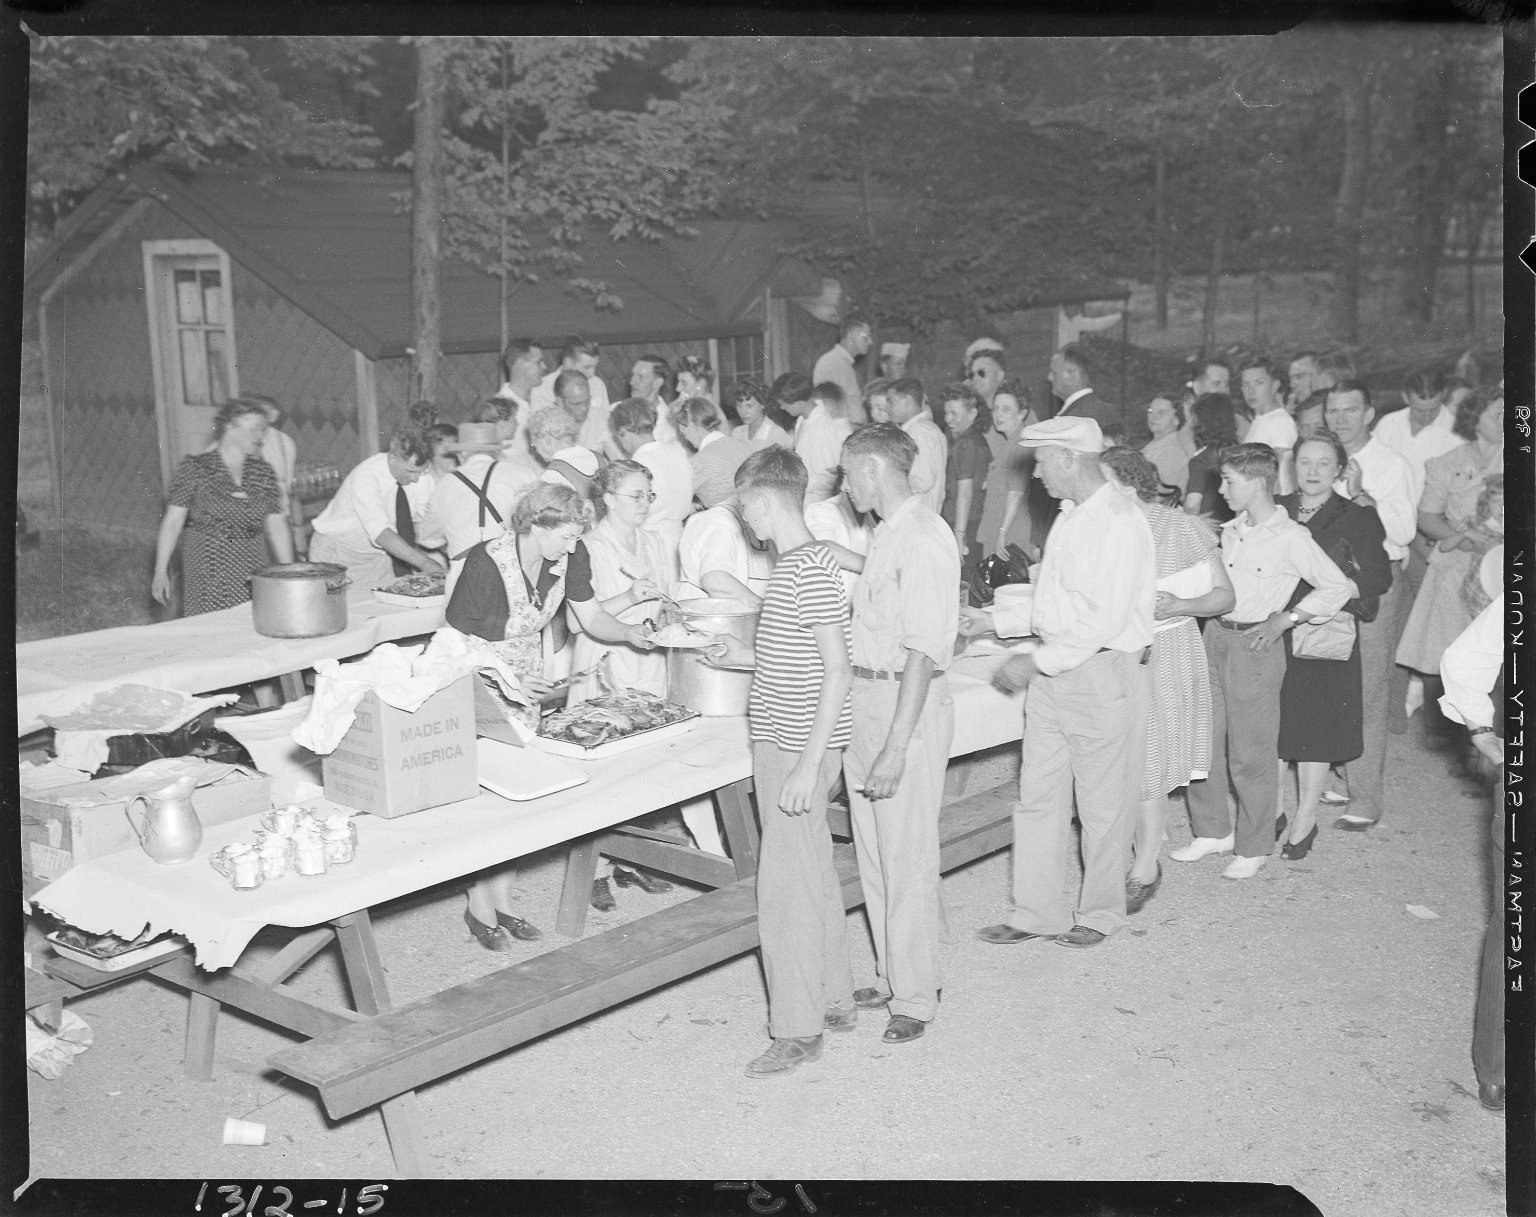 Ingersoll Steel Co. picnic, buffet lines